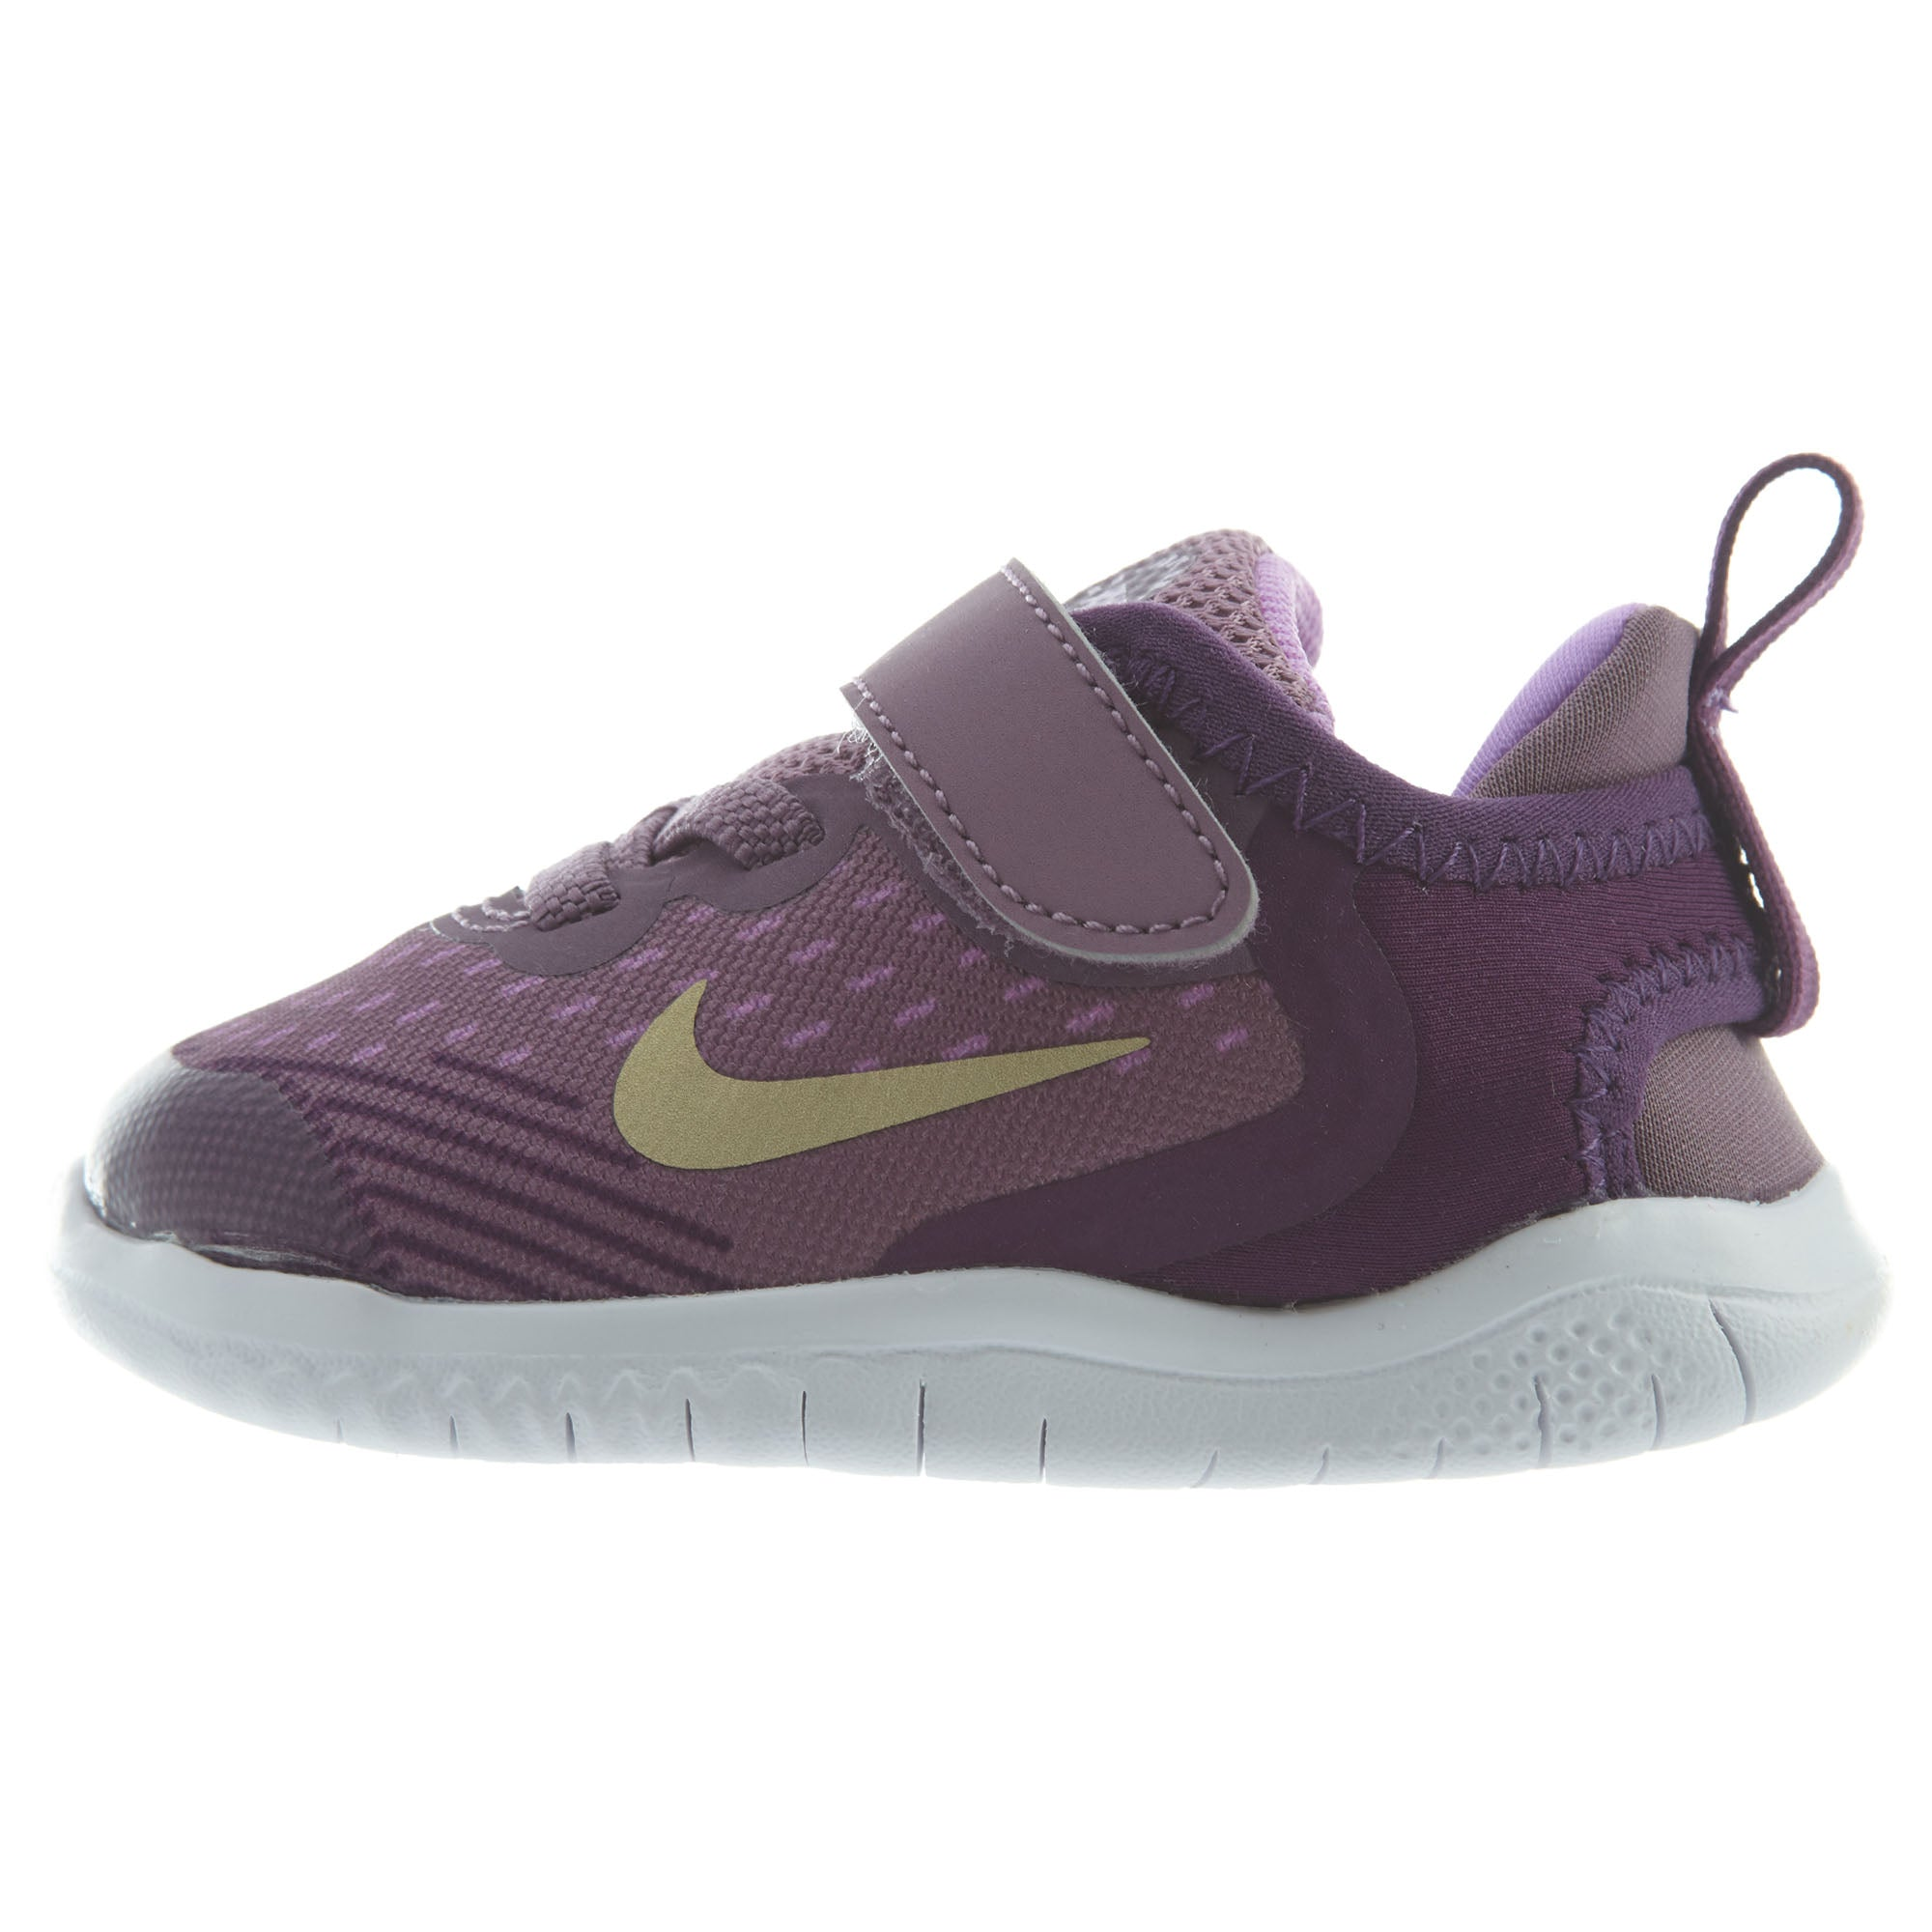 a17978e9392bb Nike Free Rn 2018 Toddlers Style   Ah3456-500 – talkmoney730